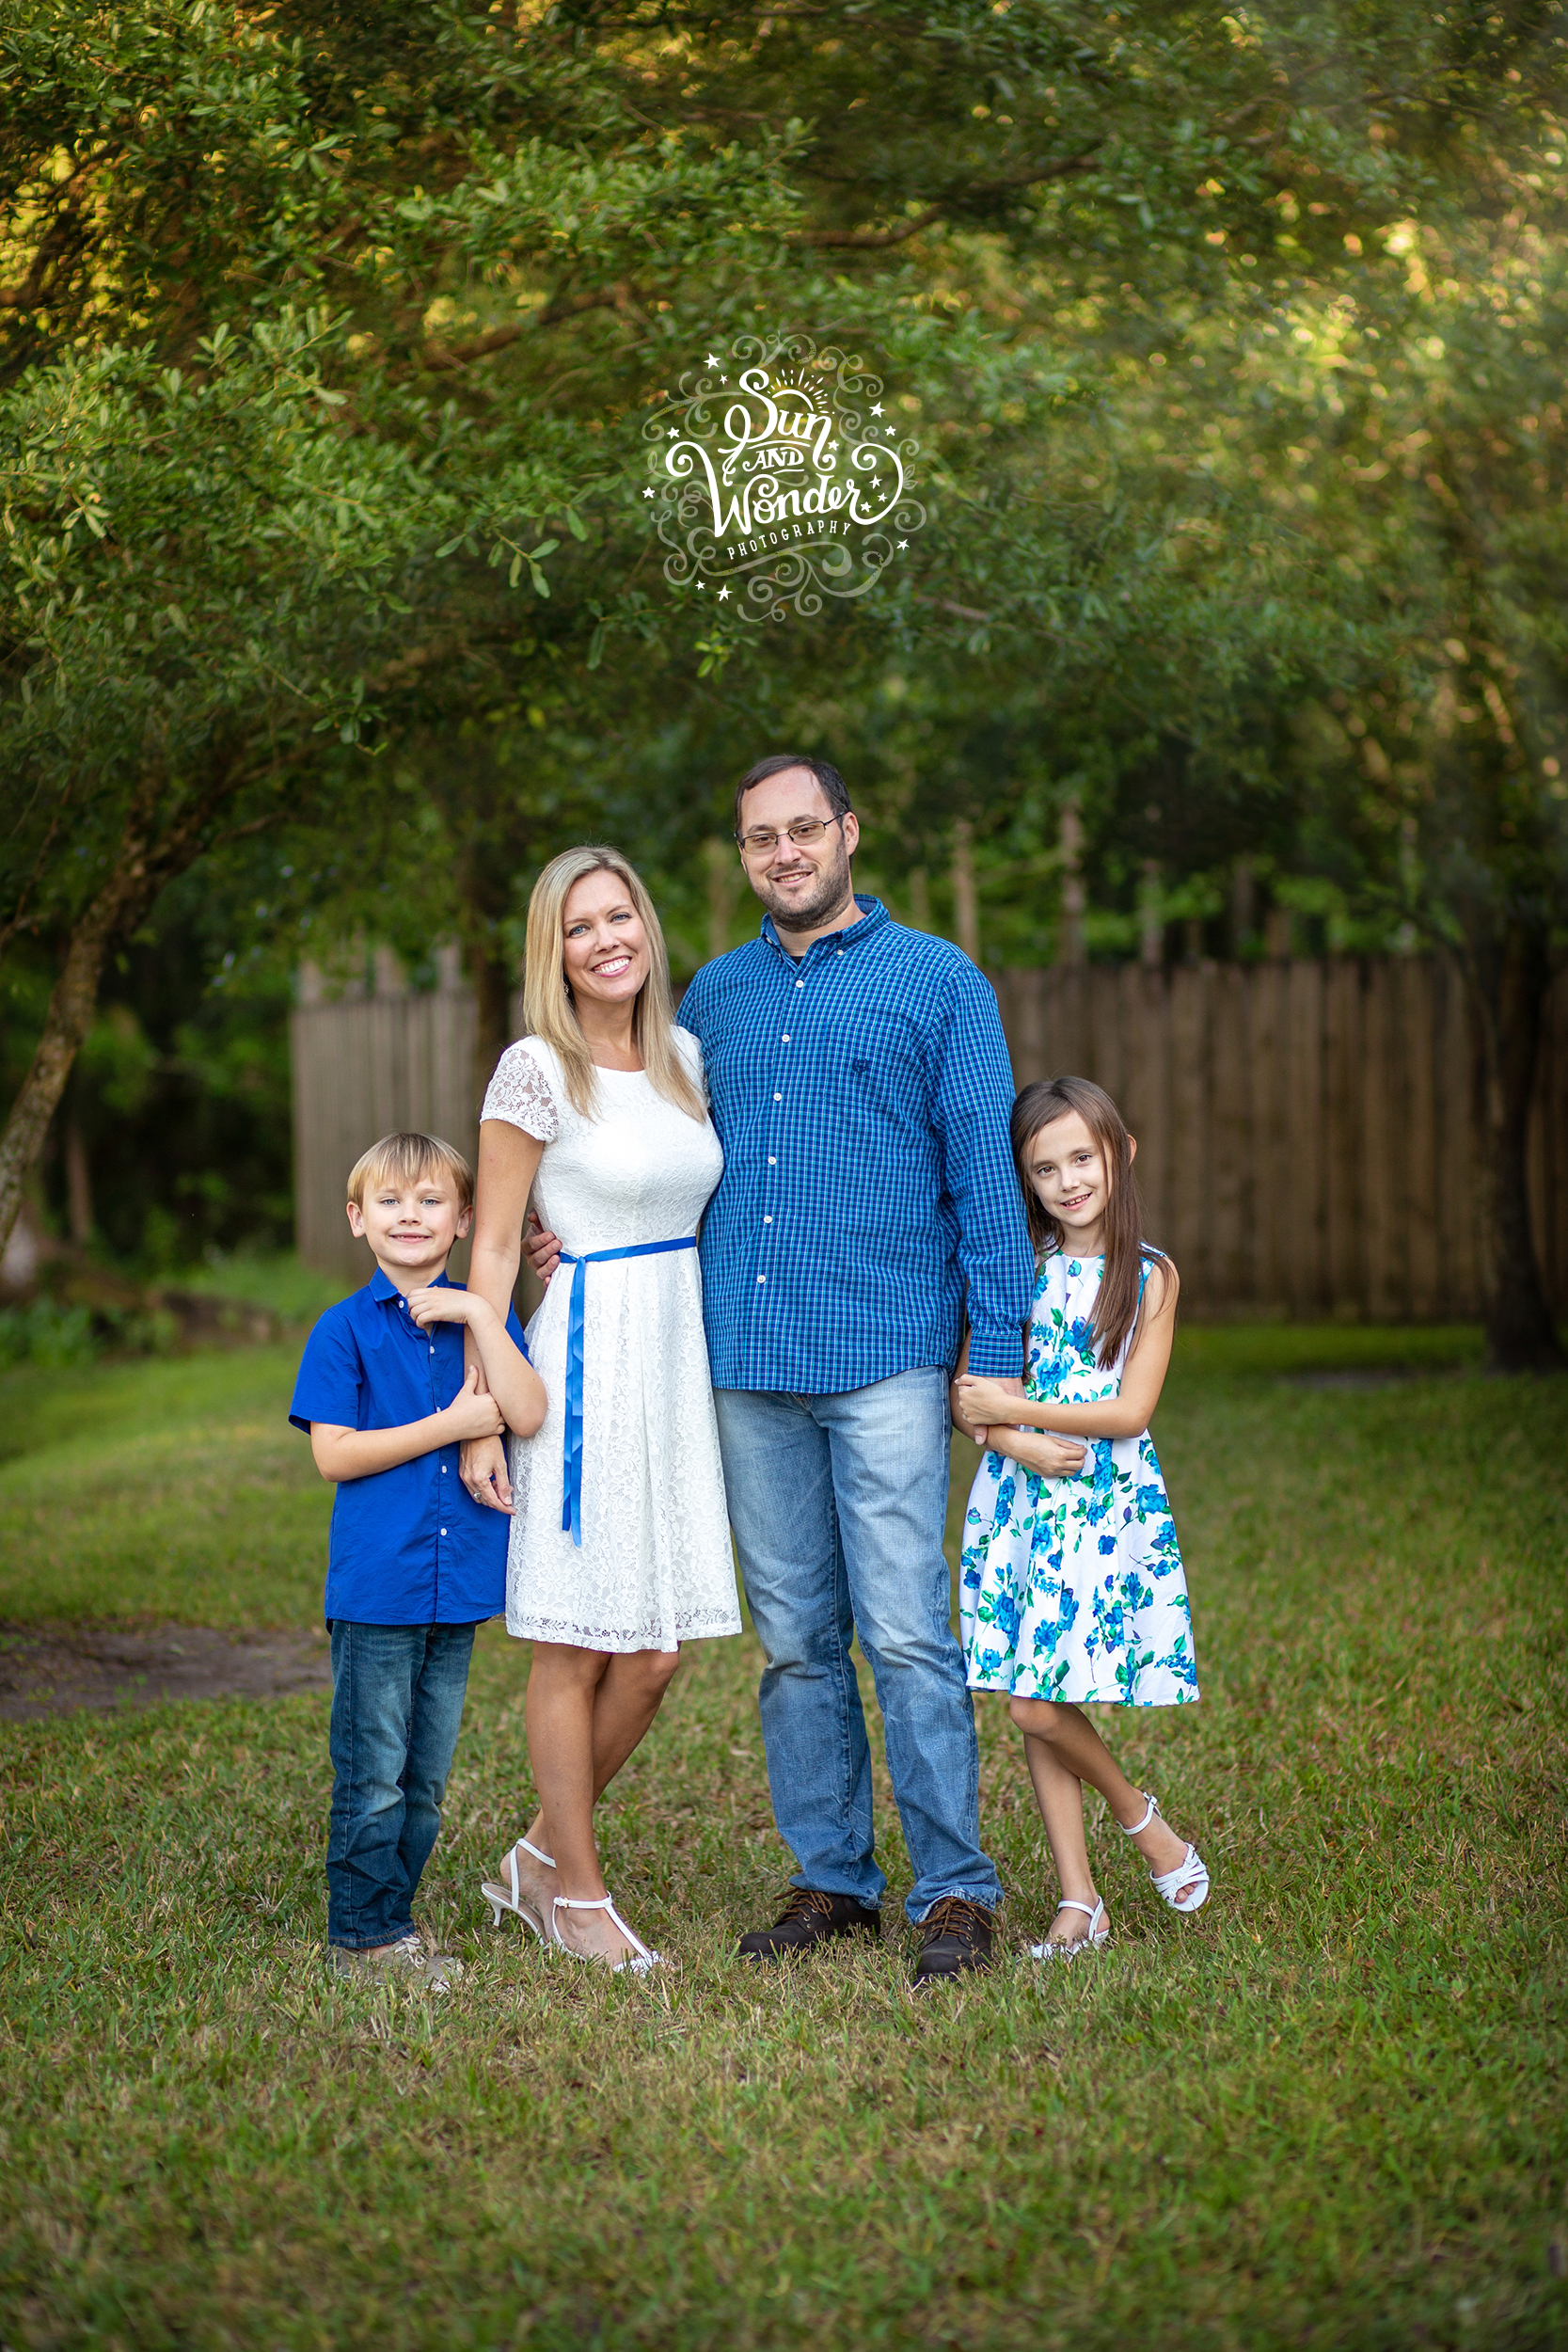 Sun and Wonder - Family Portrait Sessions